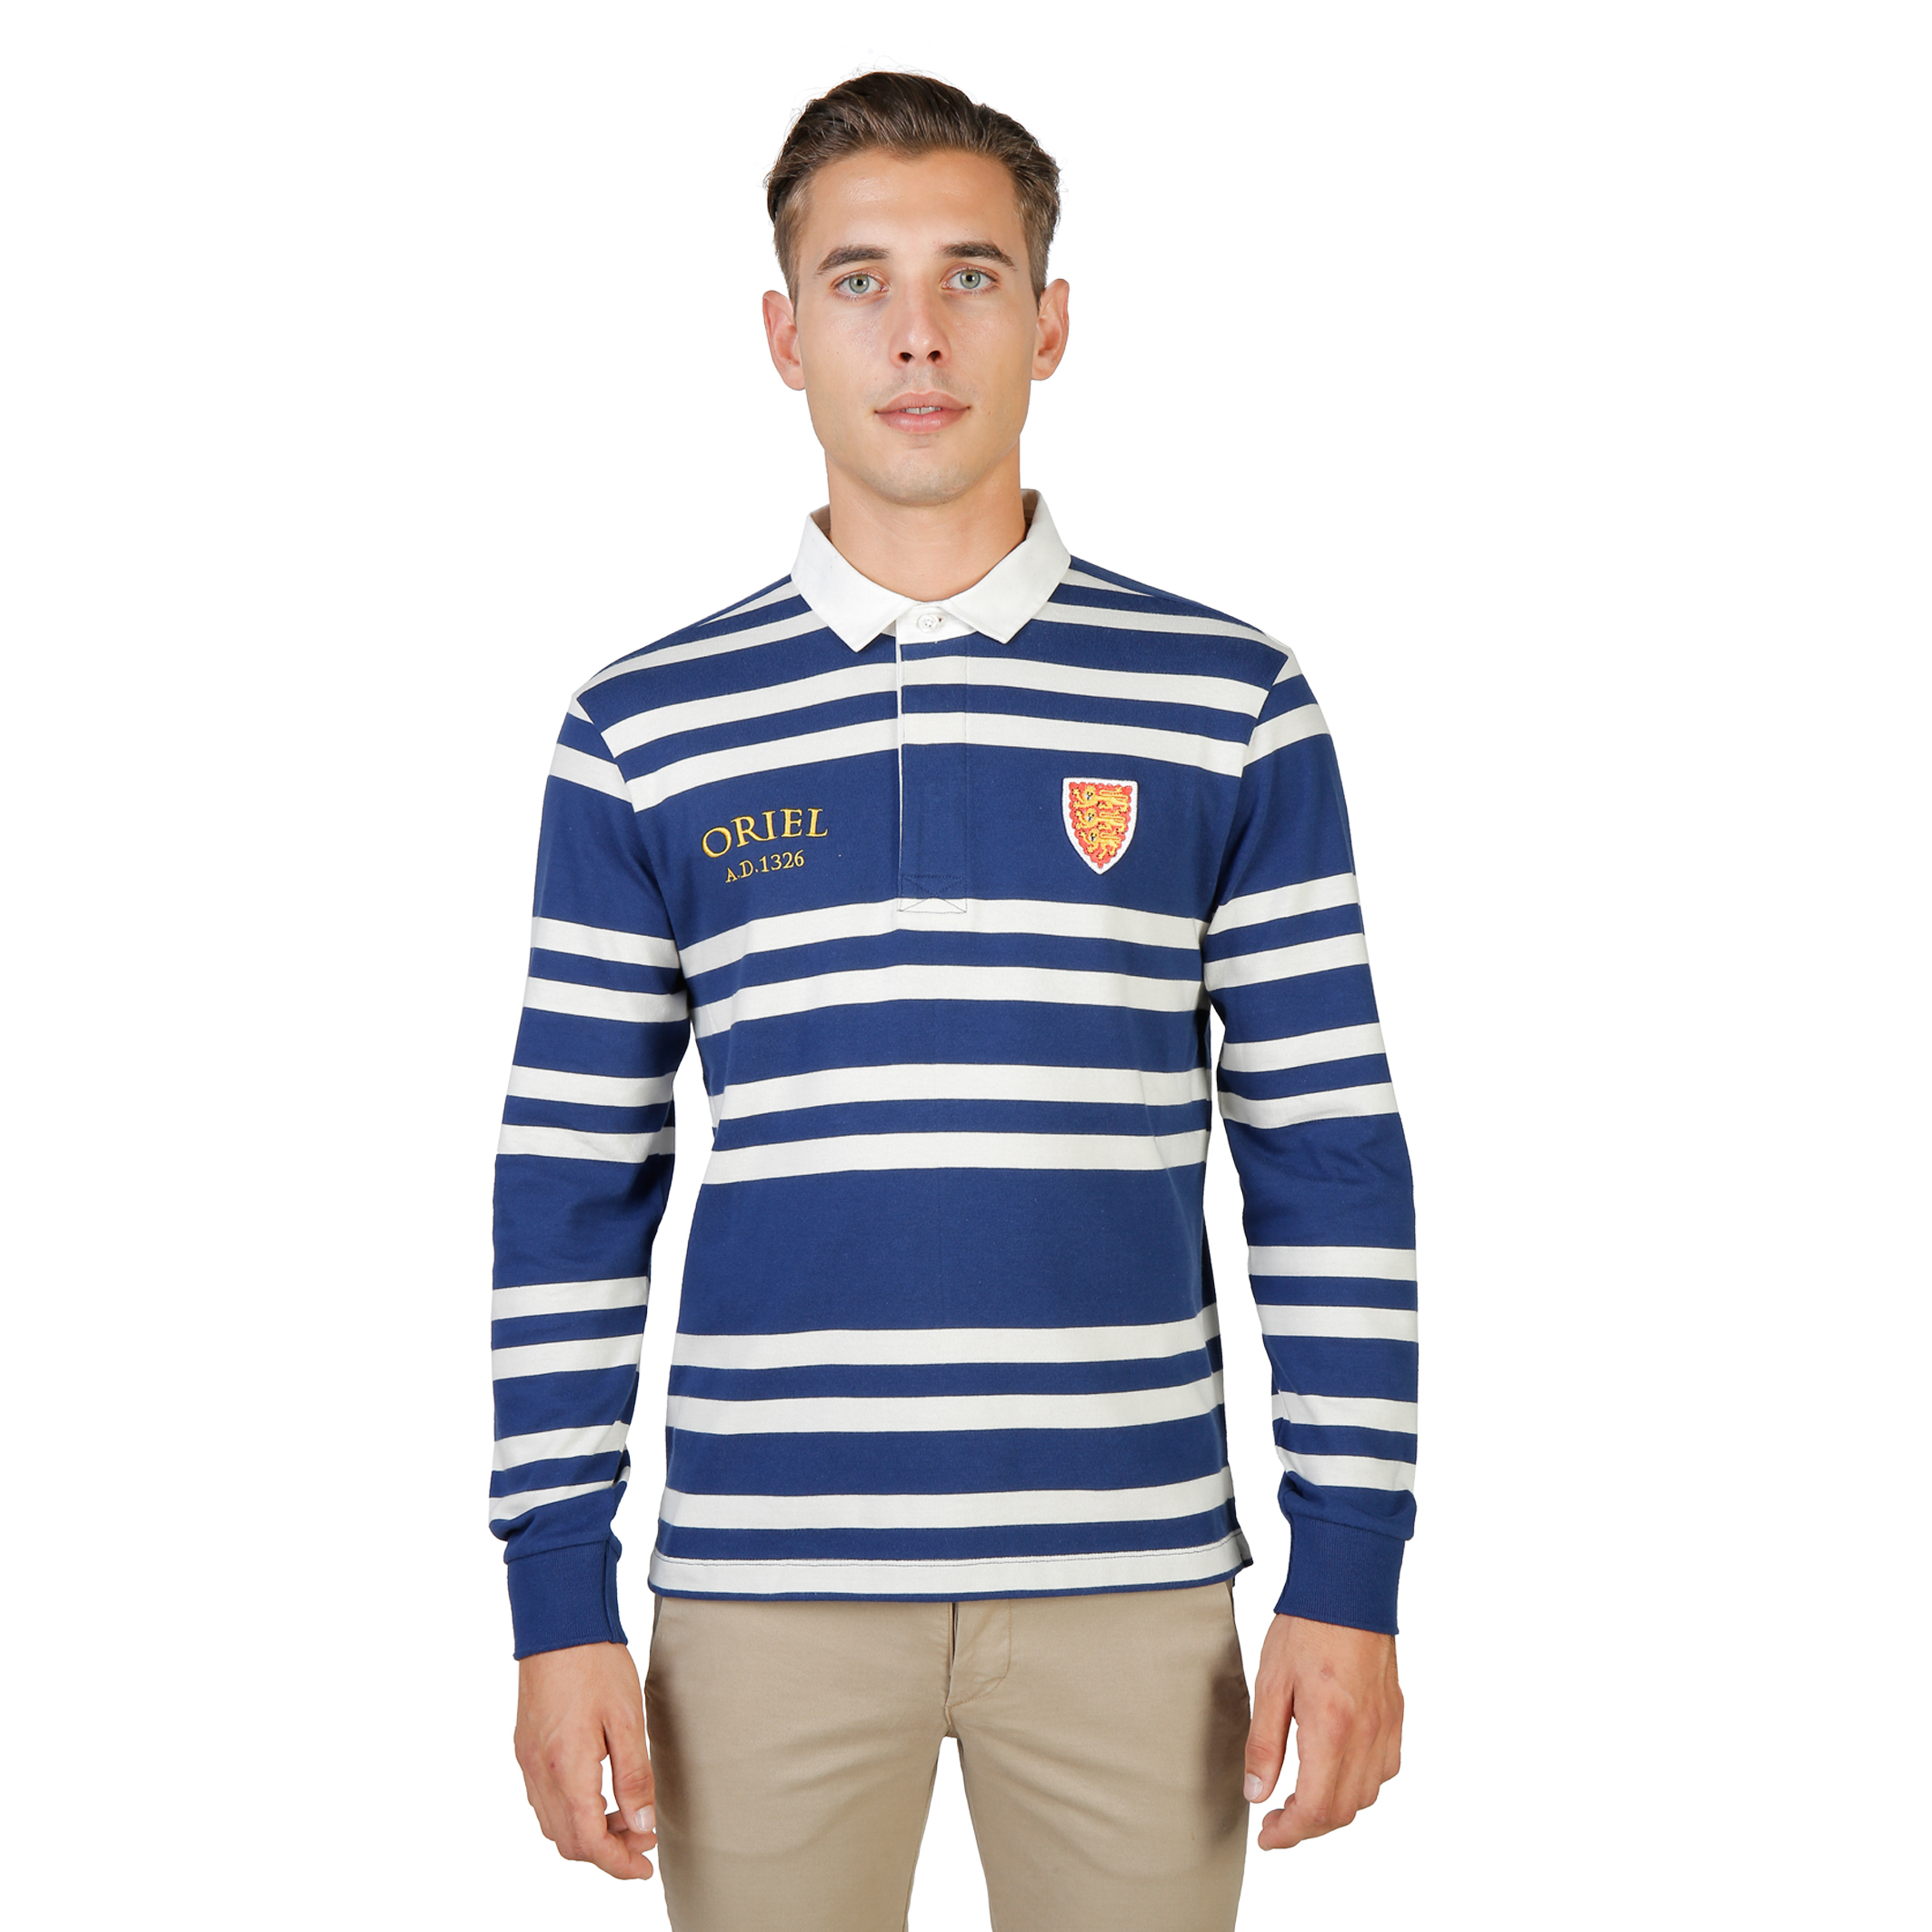 Oxford University ORIEL-RUGBY-ML Uomo Blu 74058